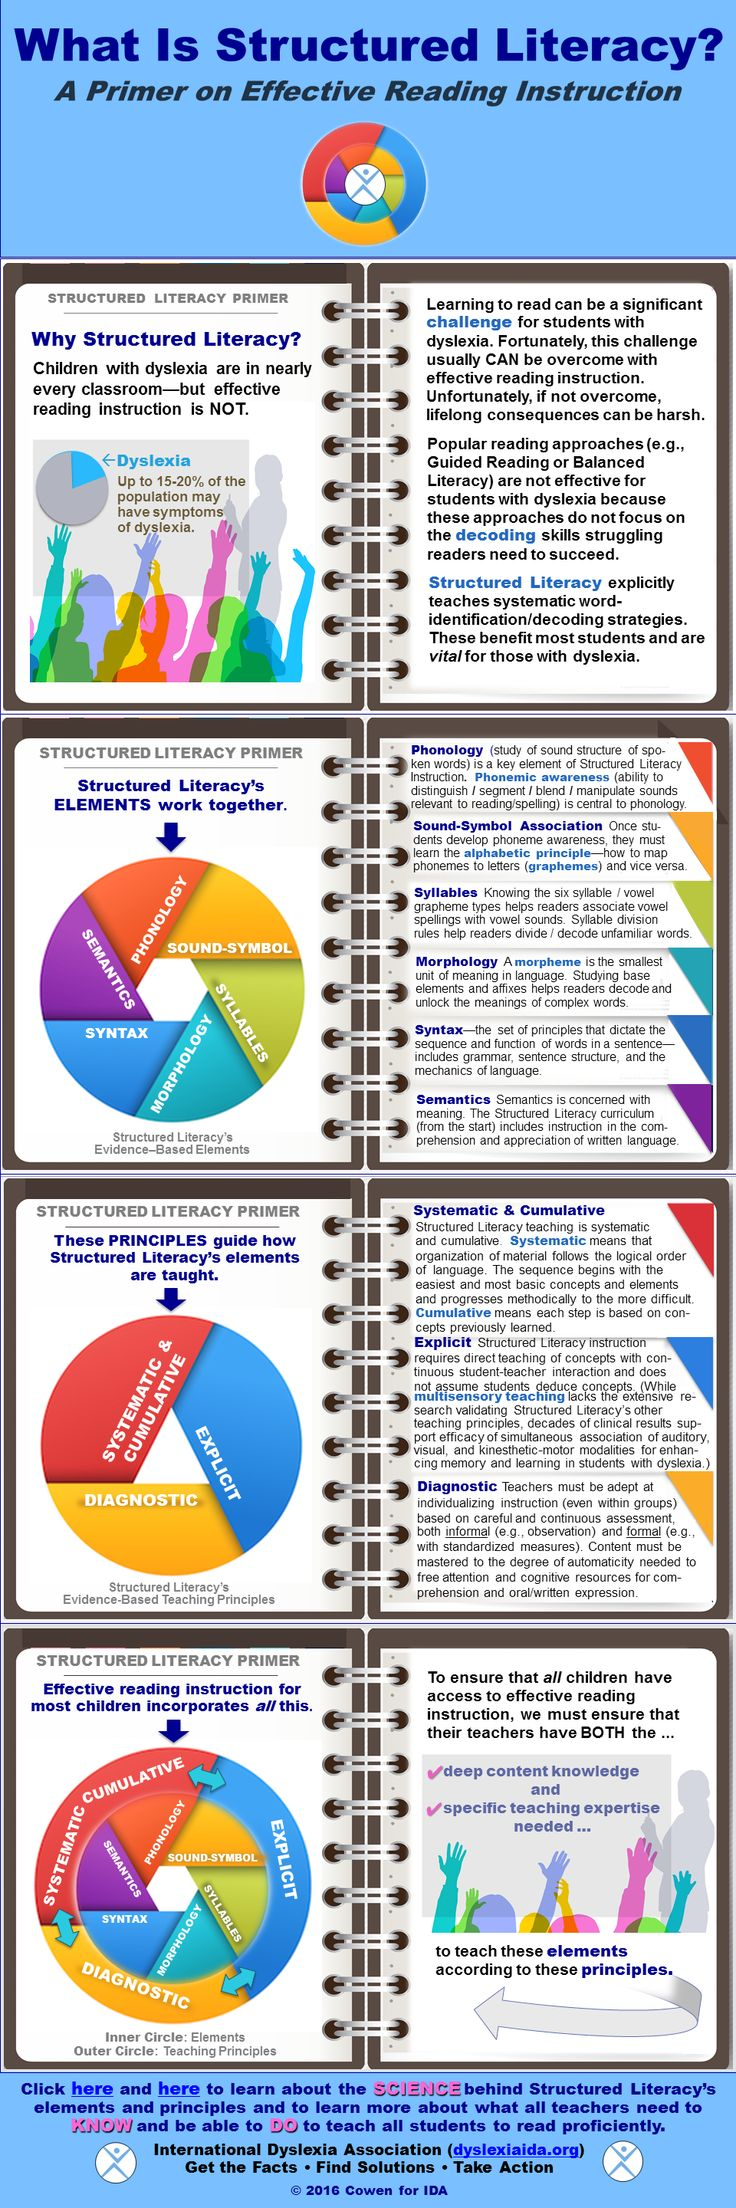 Worksheet Computer Based Reading Programs 1000 ideas about literacy programs on pinterest computer an infographic demonstrating the necessary components for a program that is structured students with